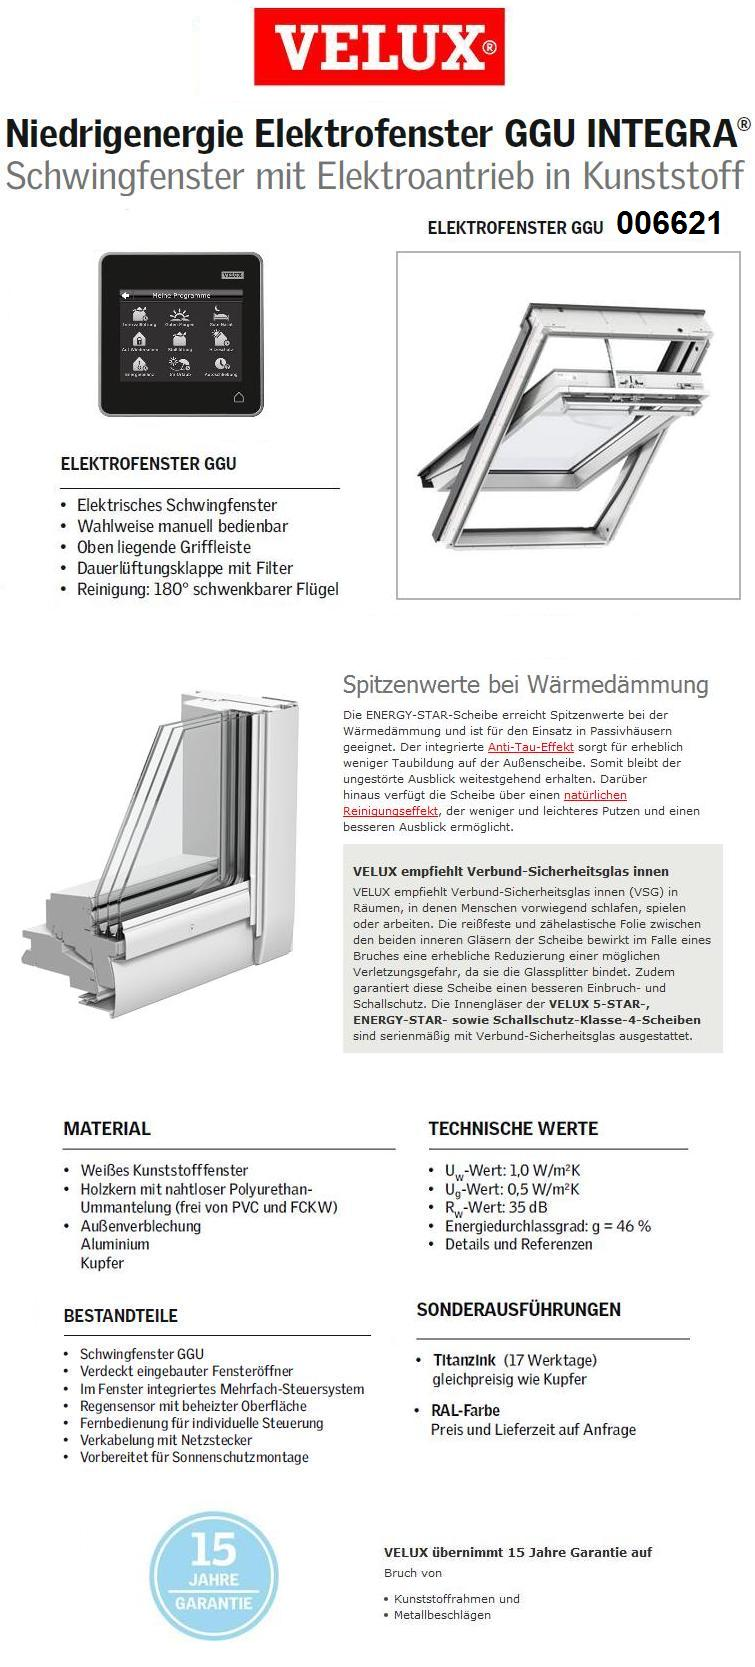 dachfenster velux integra ggu 006621 elektrofenster aus kunststoff energie plus dachmax. Black Bedroom Furniture Sets. Home Design Ideas